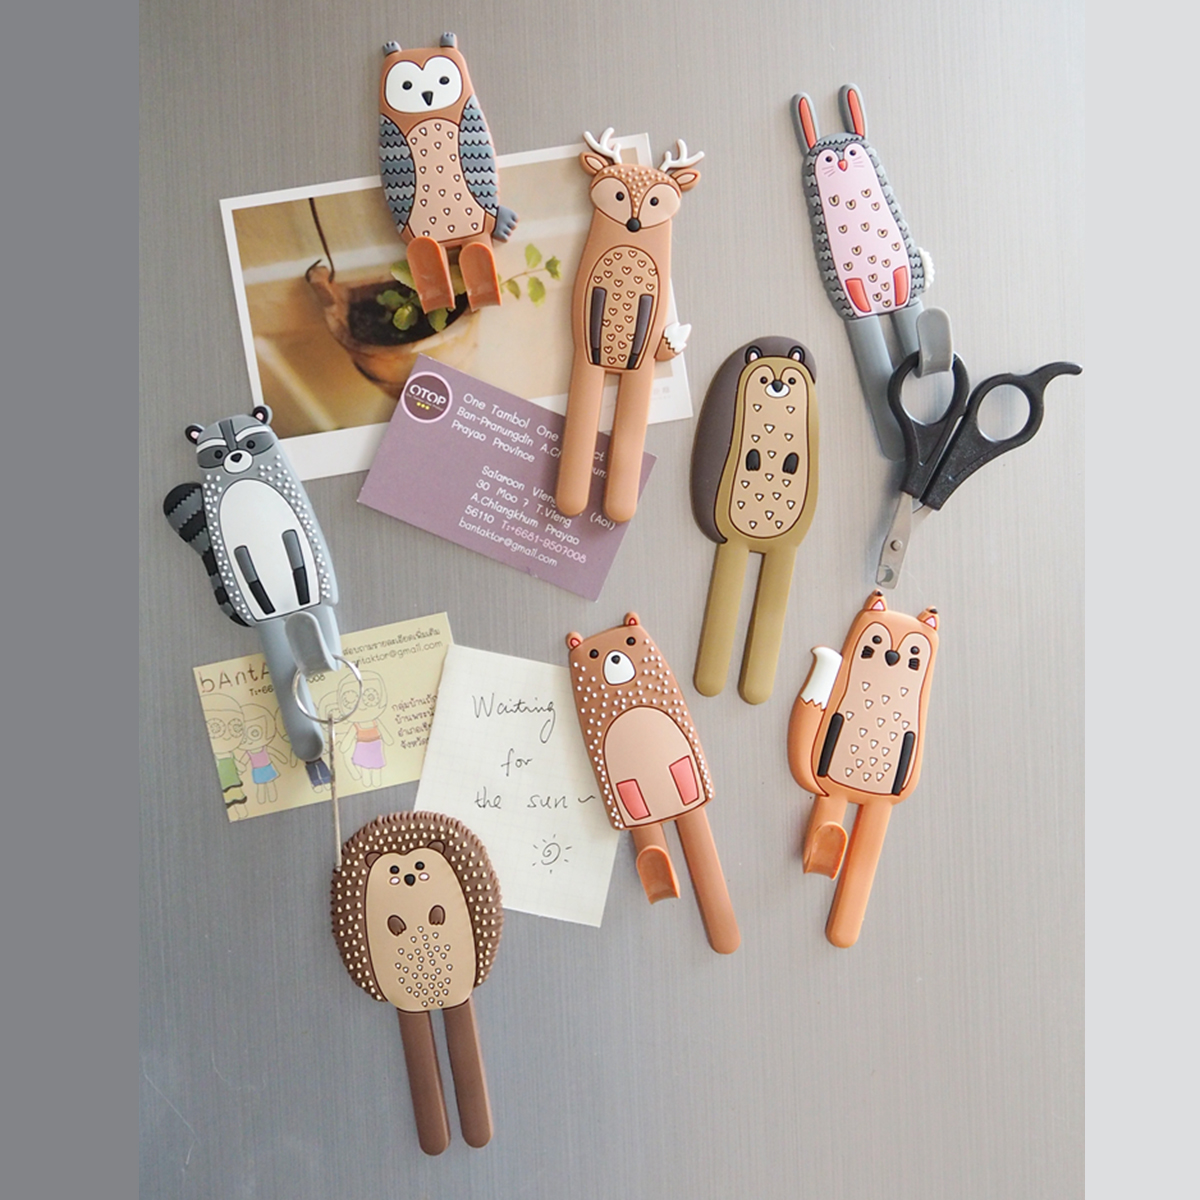 Cute Animals Magnetic Hooks Removable Decorative Fridge Sticker Refrigerator Message Magnet Coat Hanger Key Holder Storage Hook